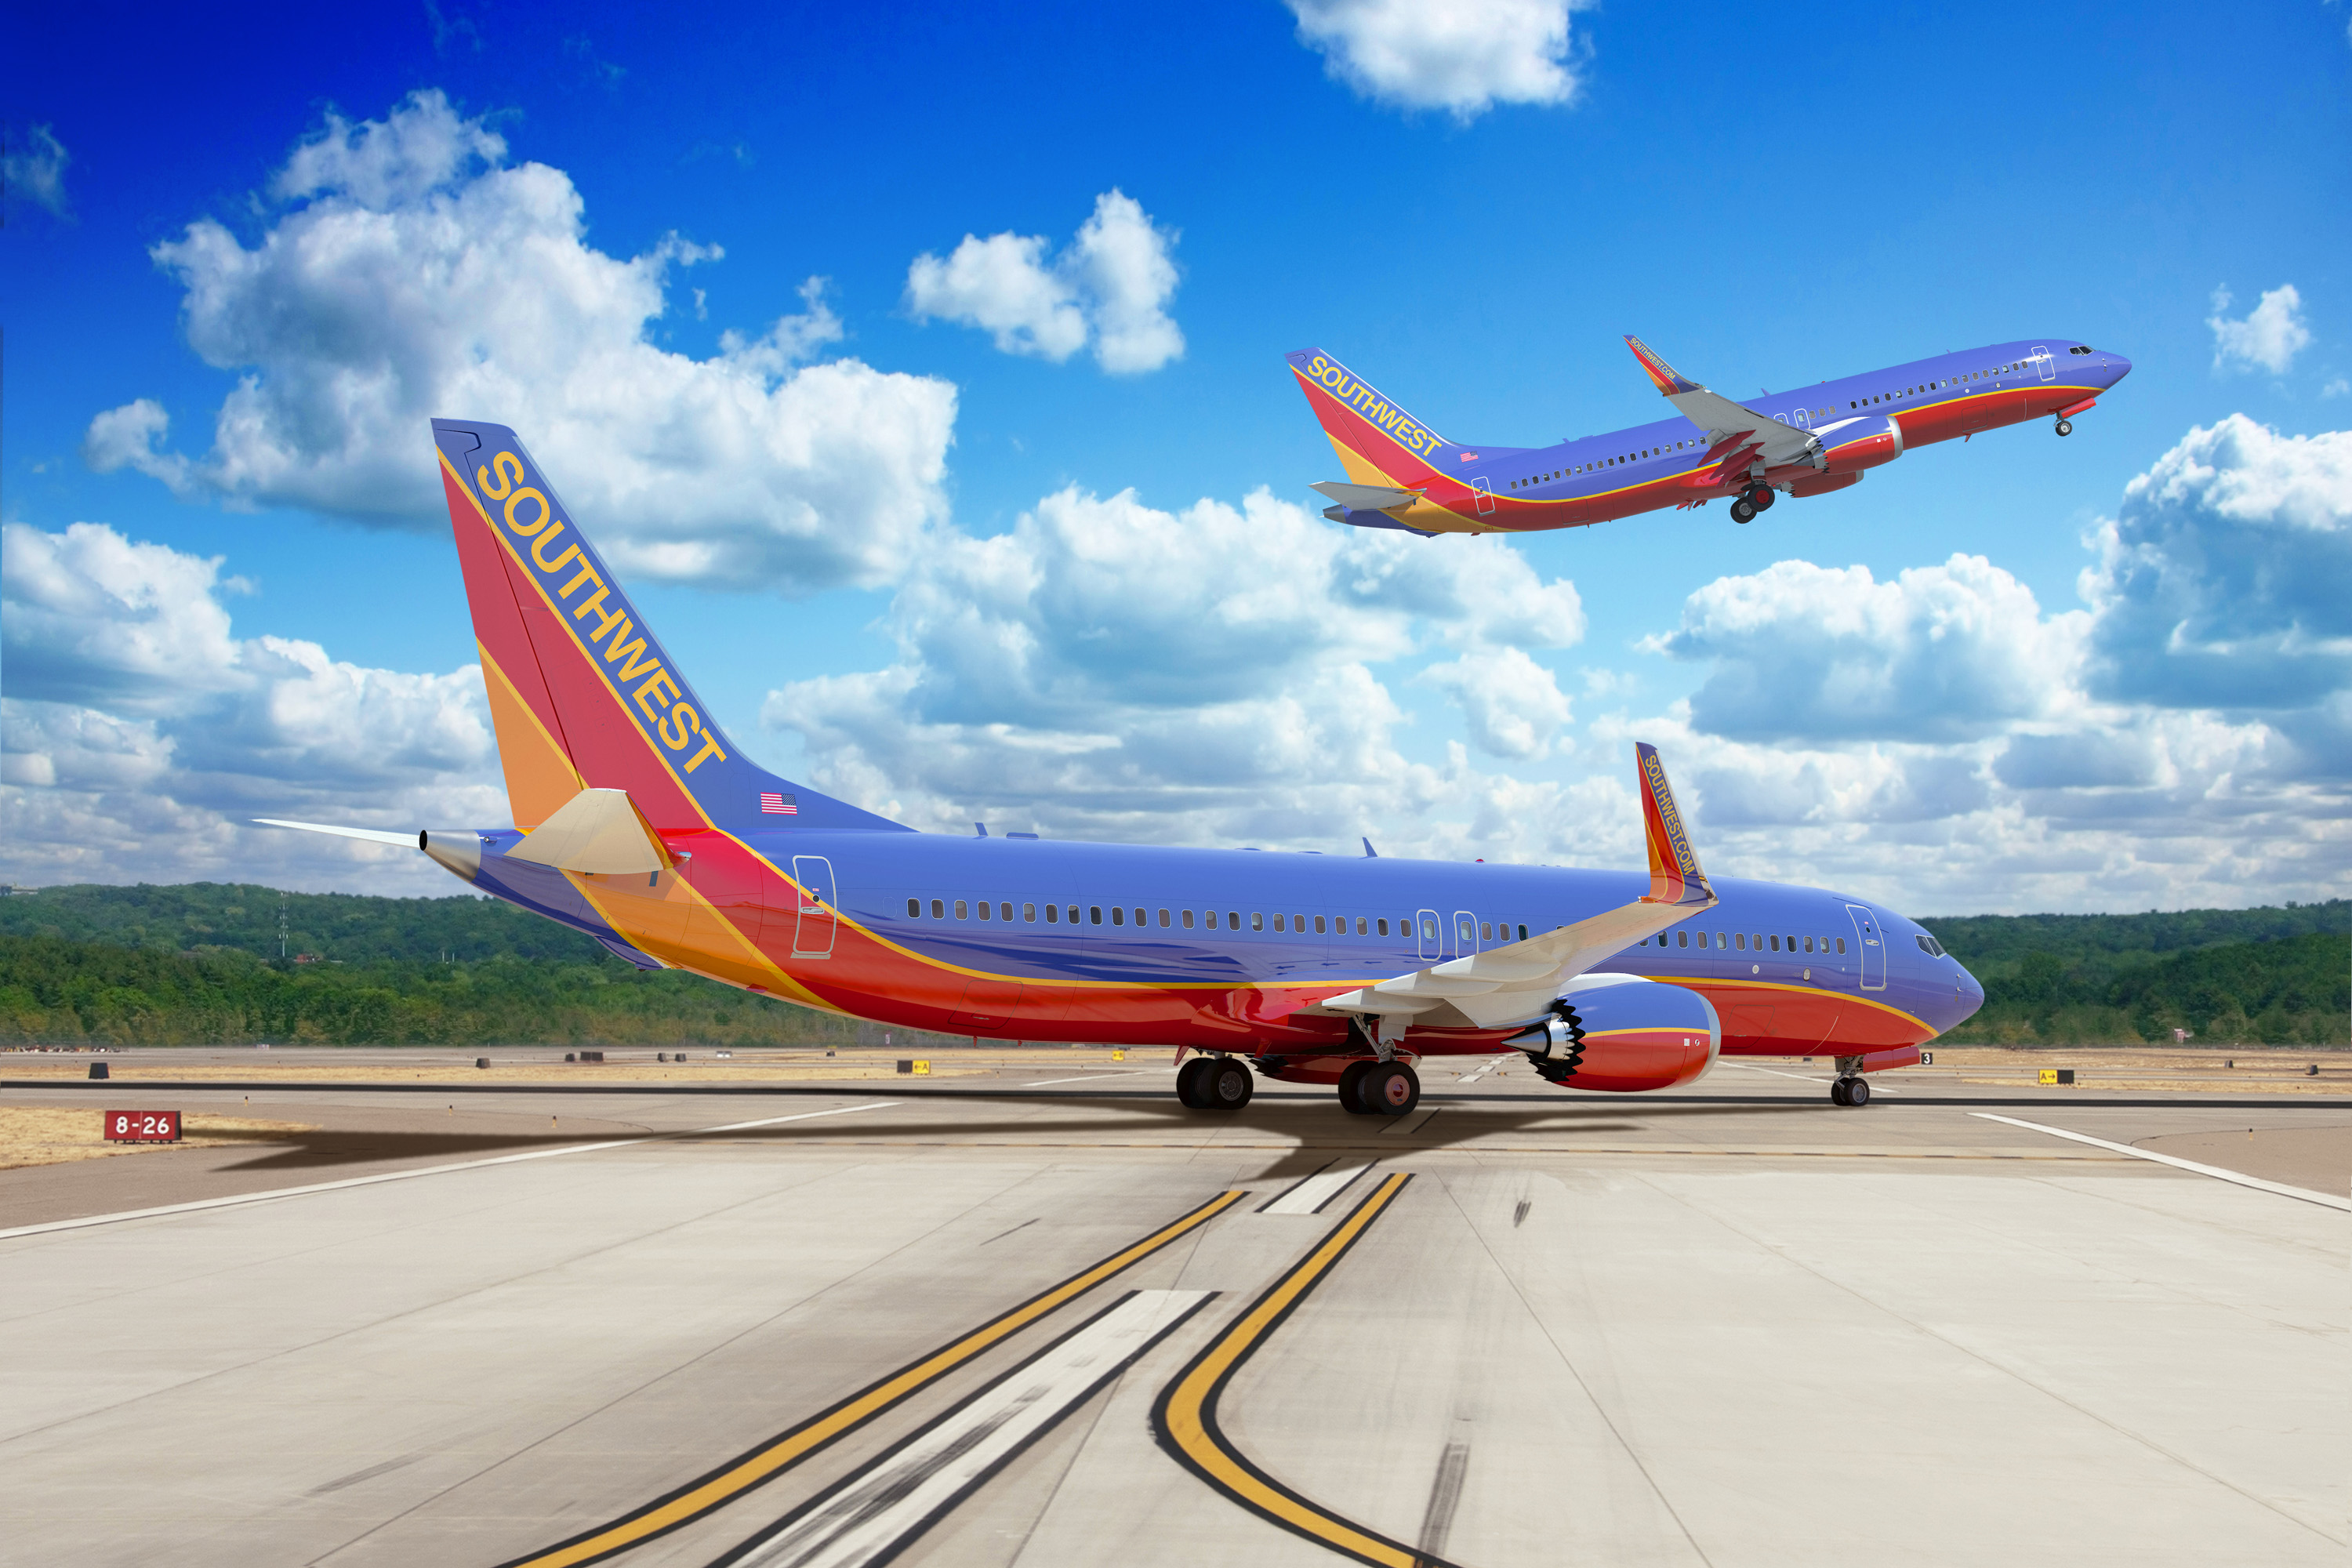 southwest airline of the future